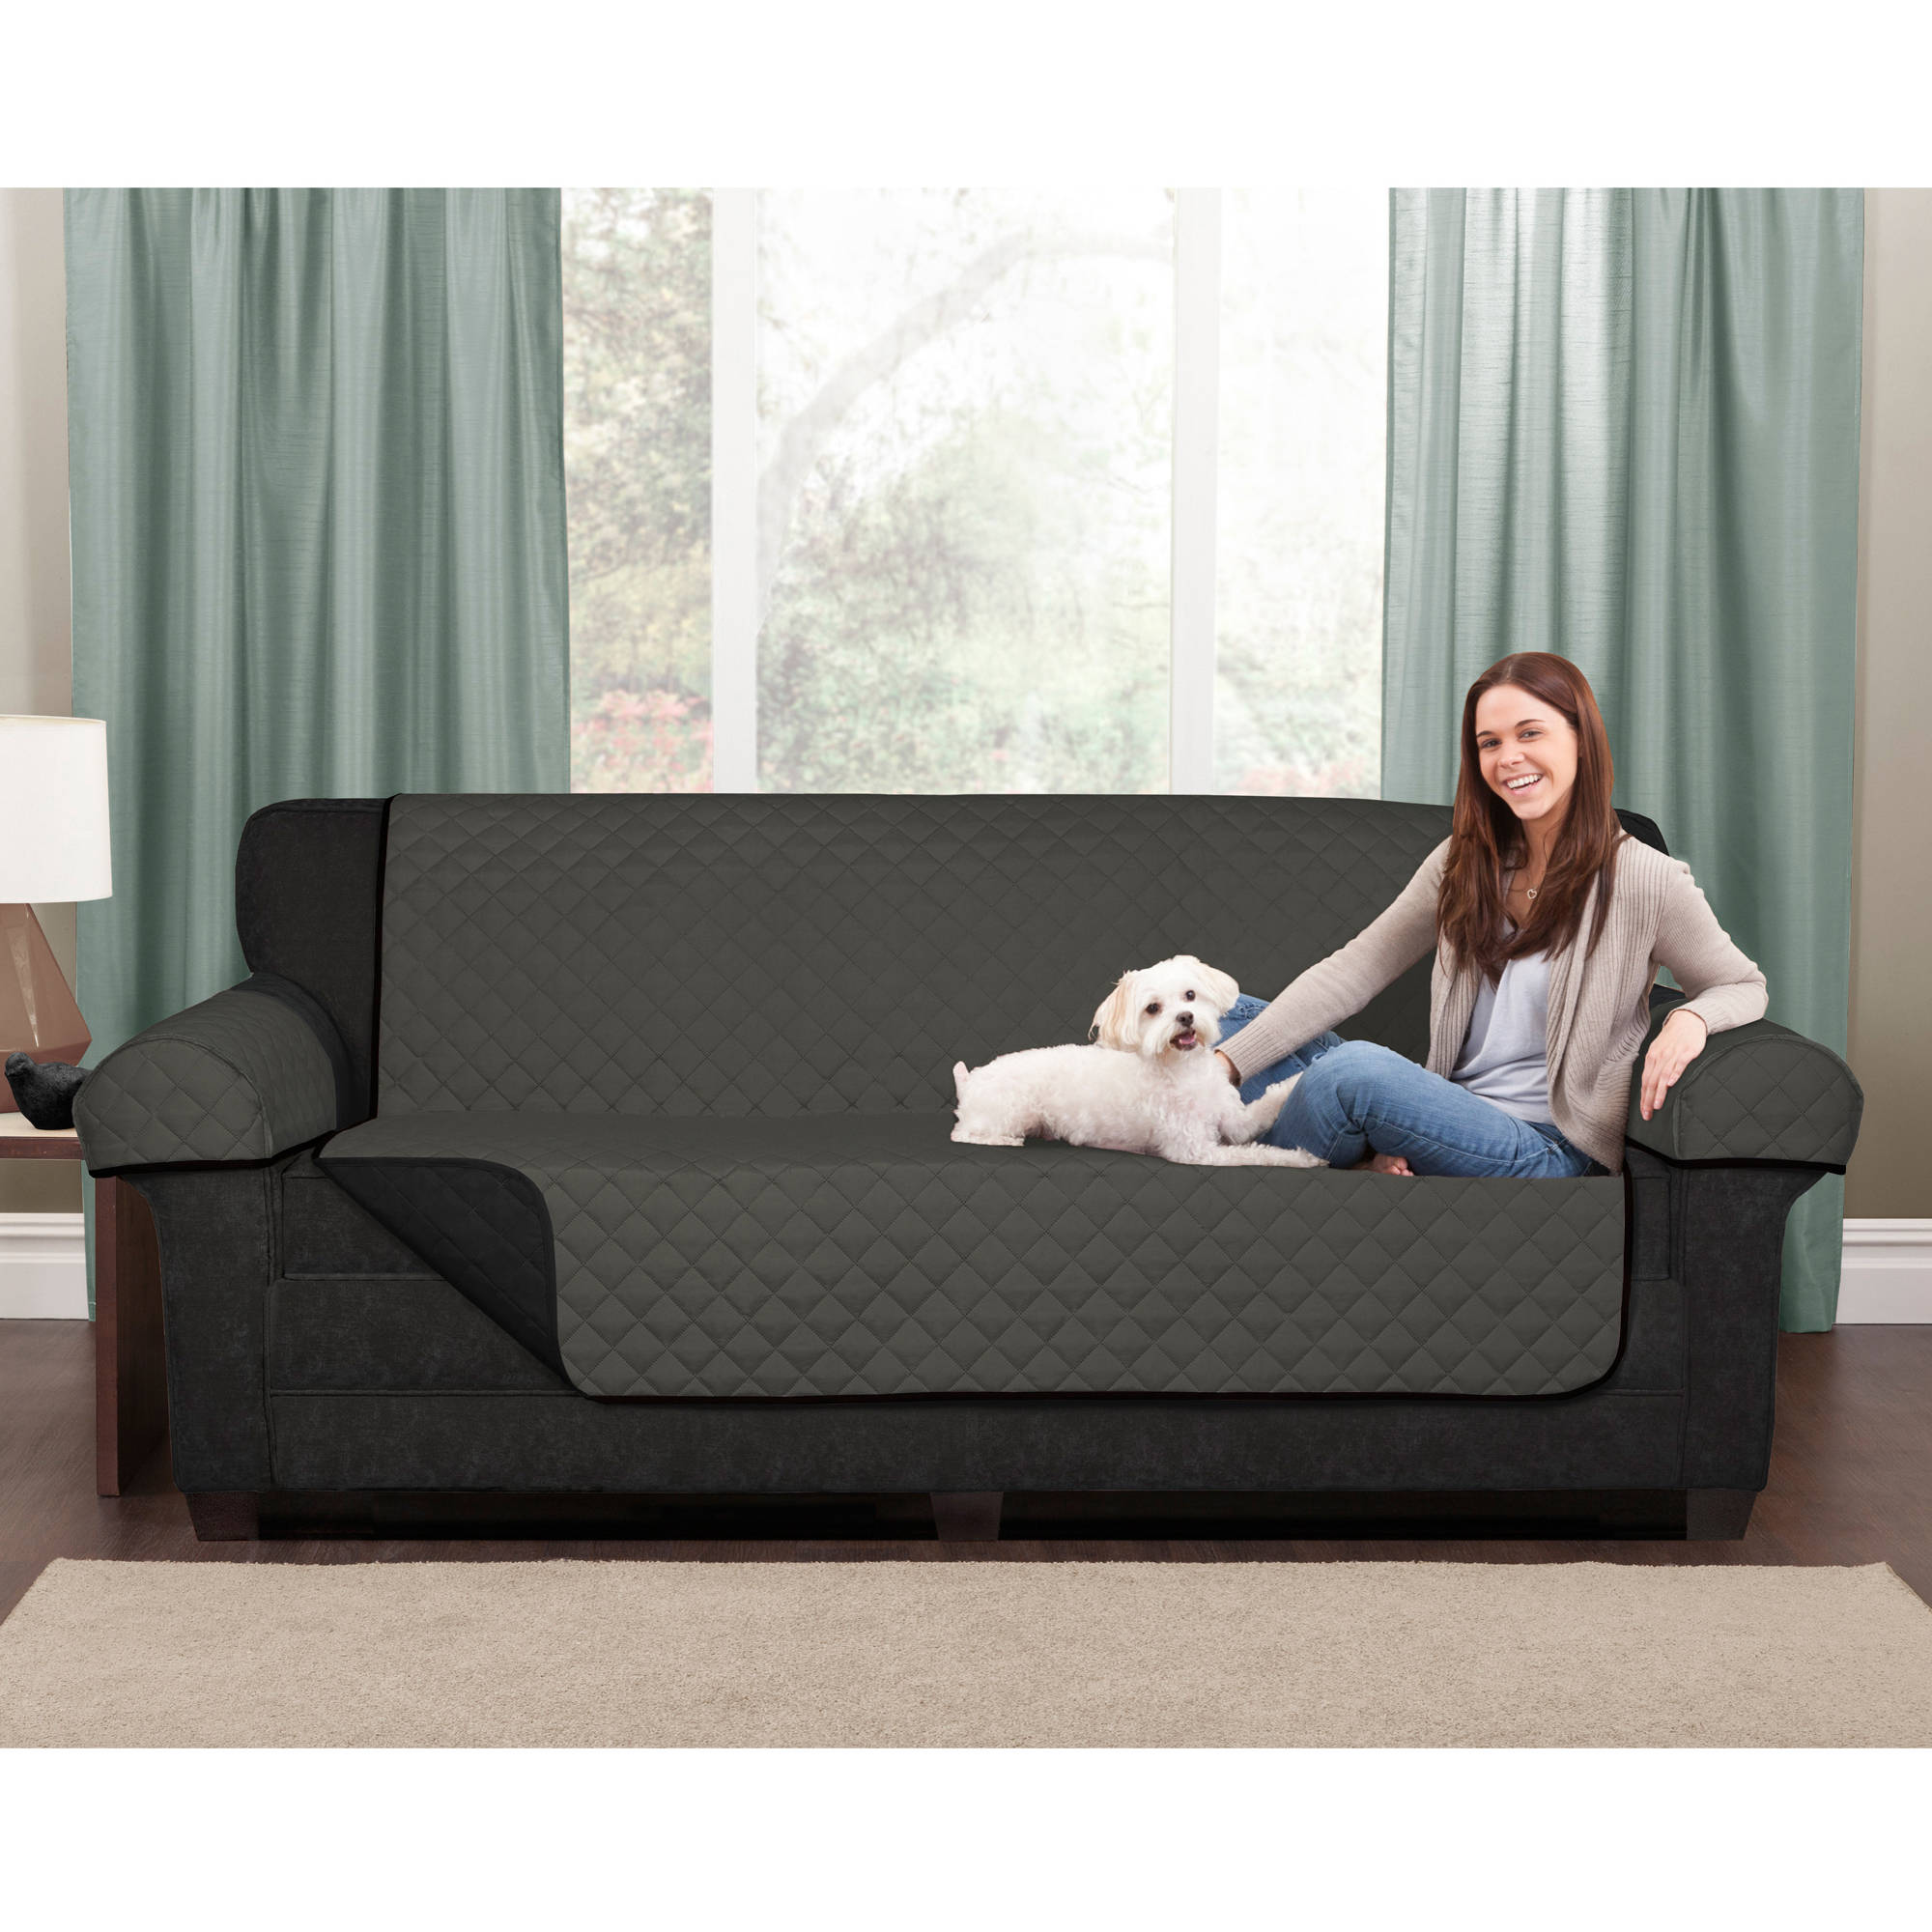 Maytex Reversible Microfiber Fabric Pet/Furniture Protector Collection